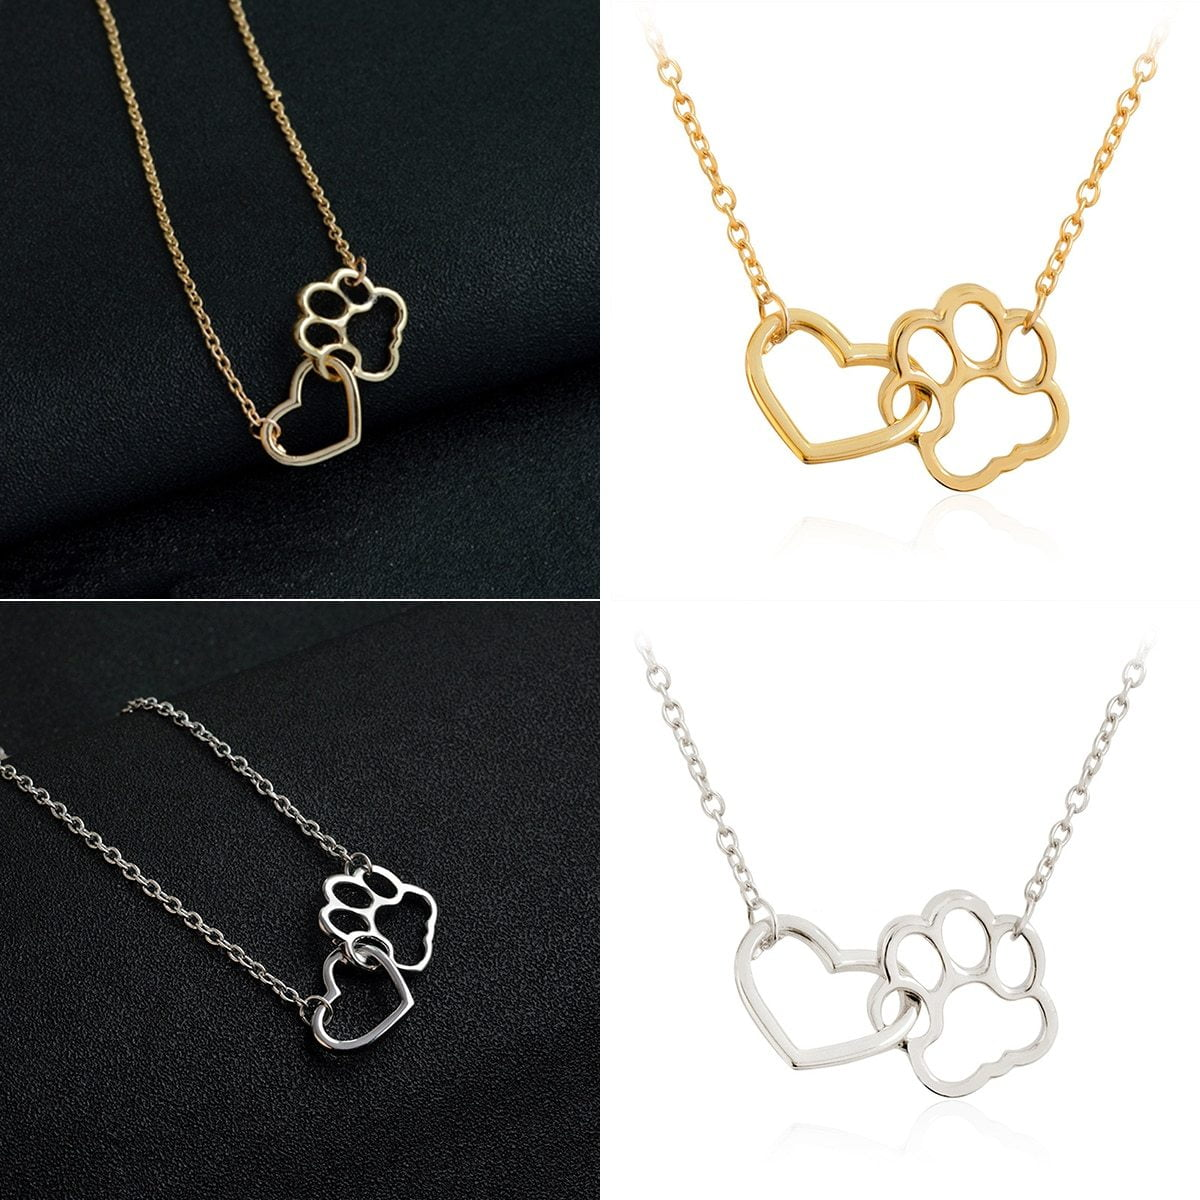 Cat Love Heart Pendant Necklace - 75% OFF